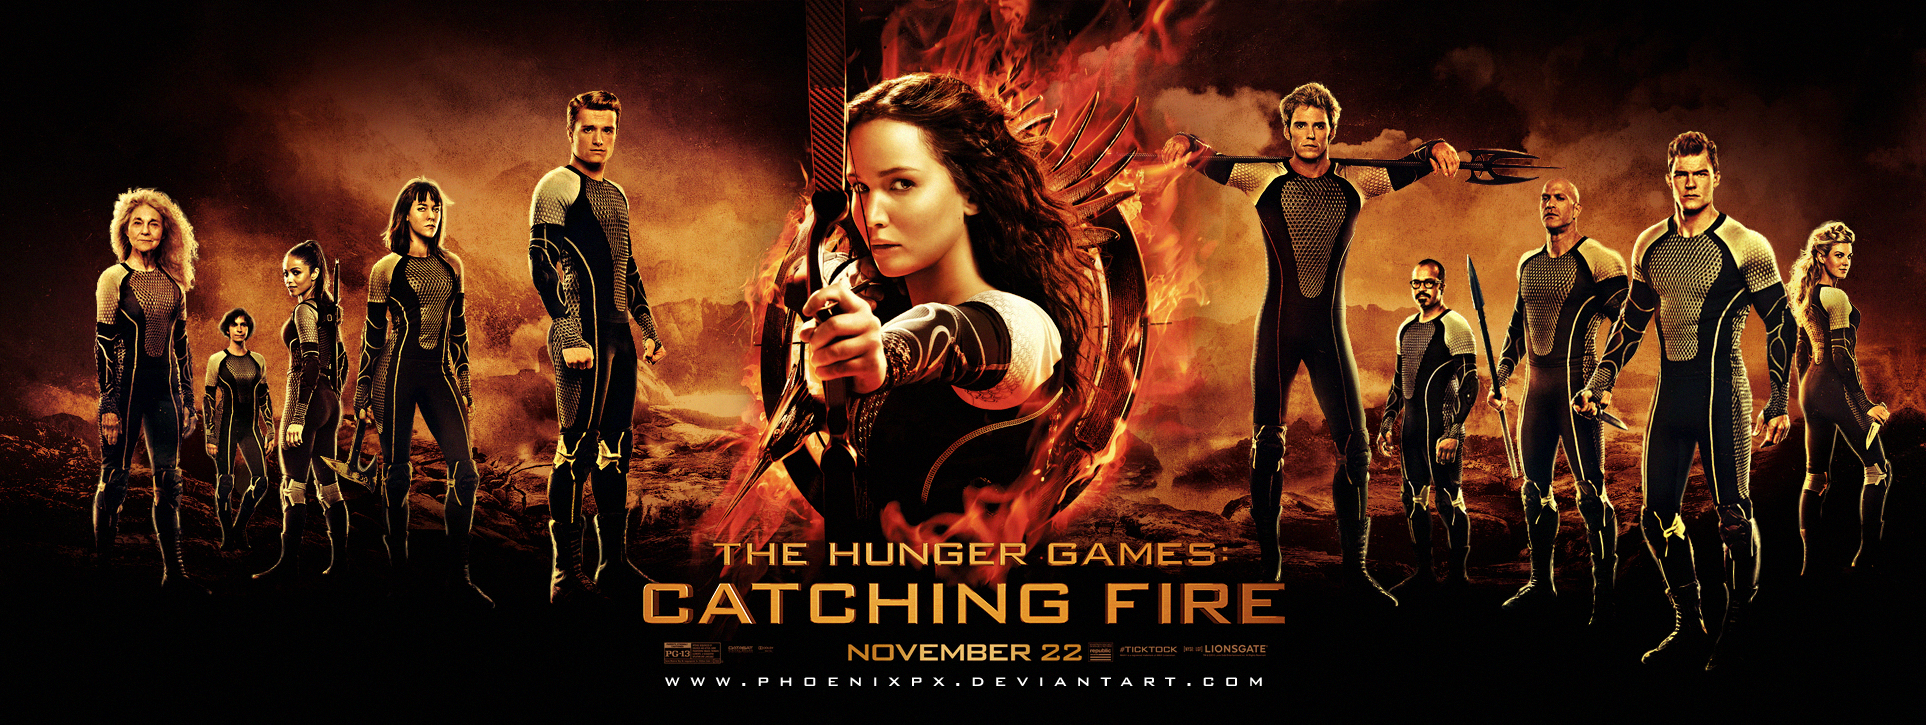 watch the hunger games catching fire full movie online free